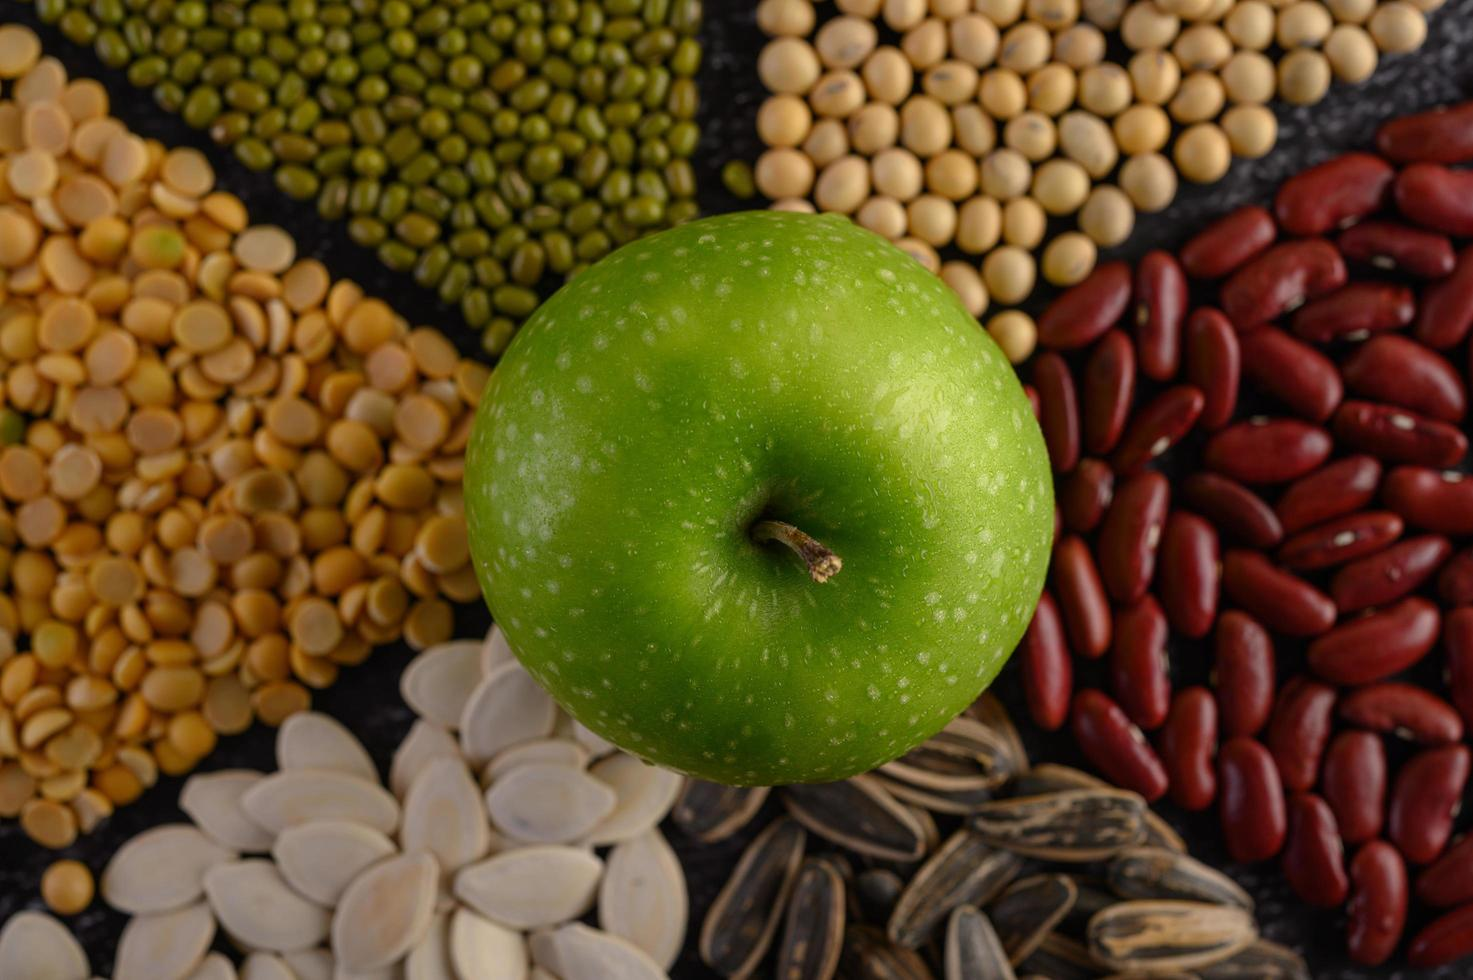 Legumes with an apple photo